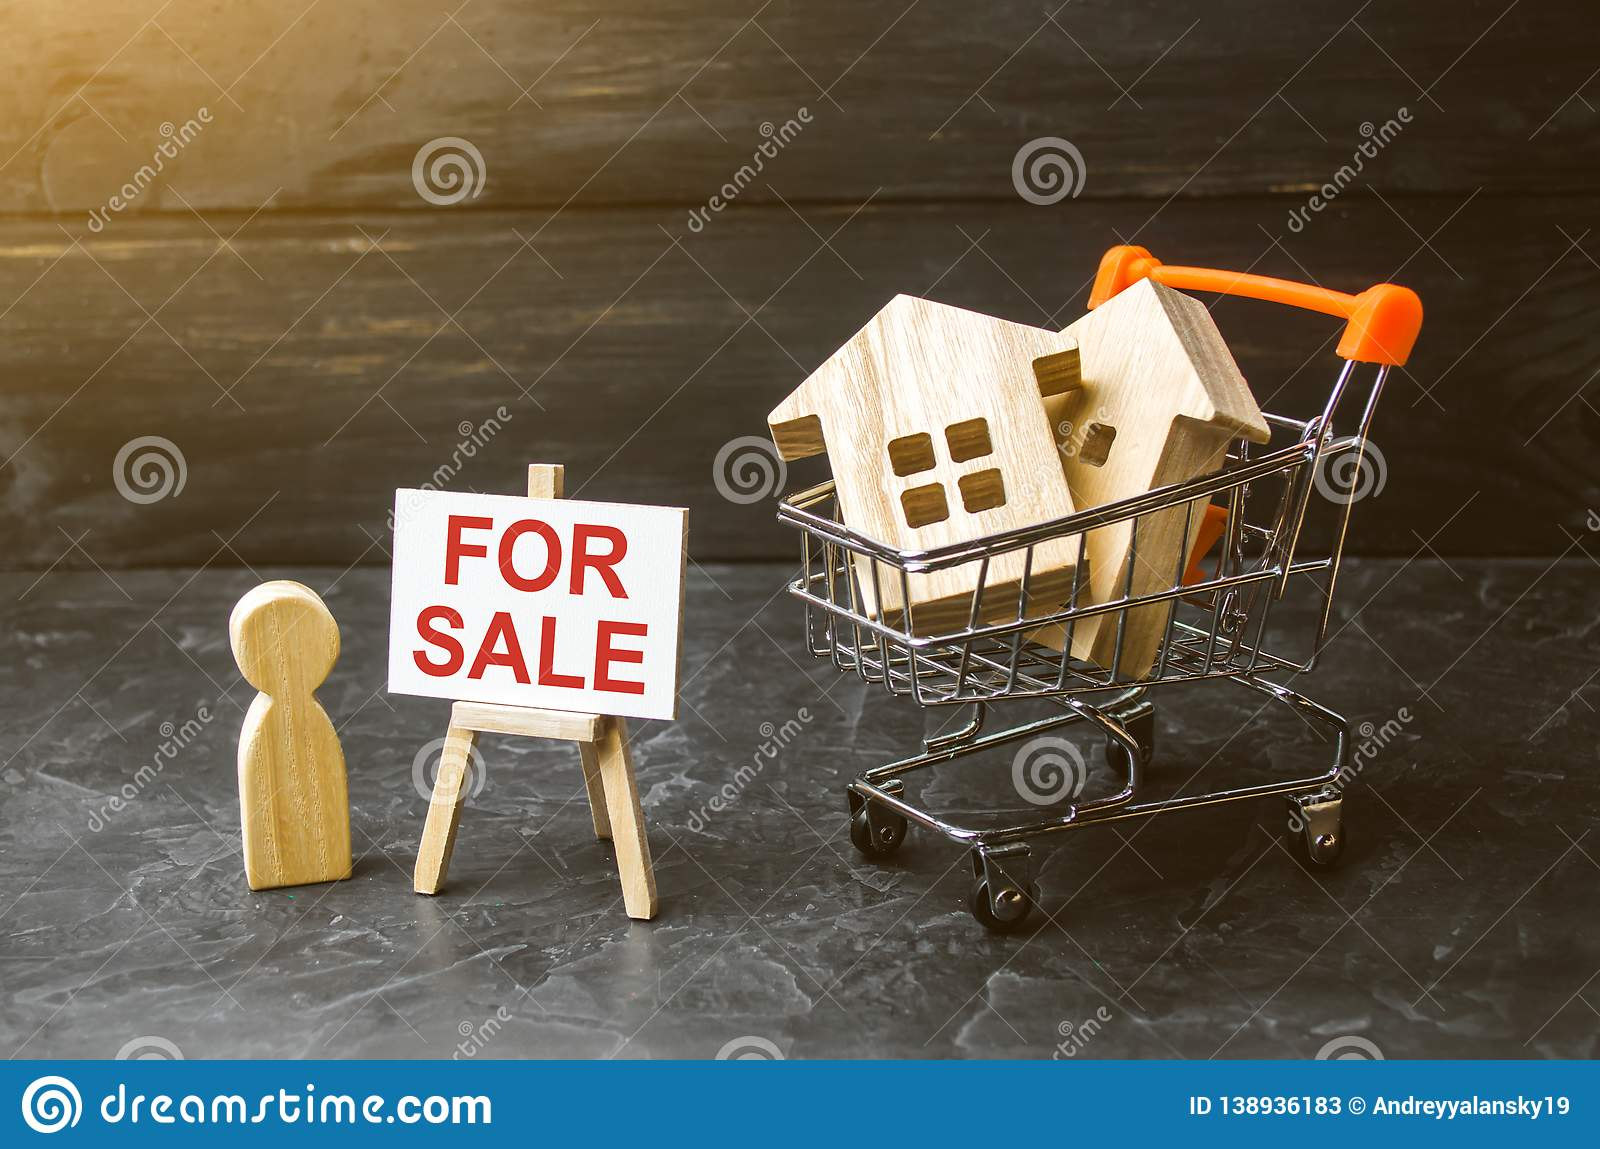 Supermarket cart with houses and man with a poster for sale. The concept of selling a home, real estate services or buying from